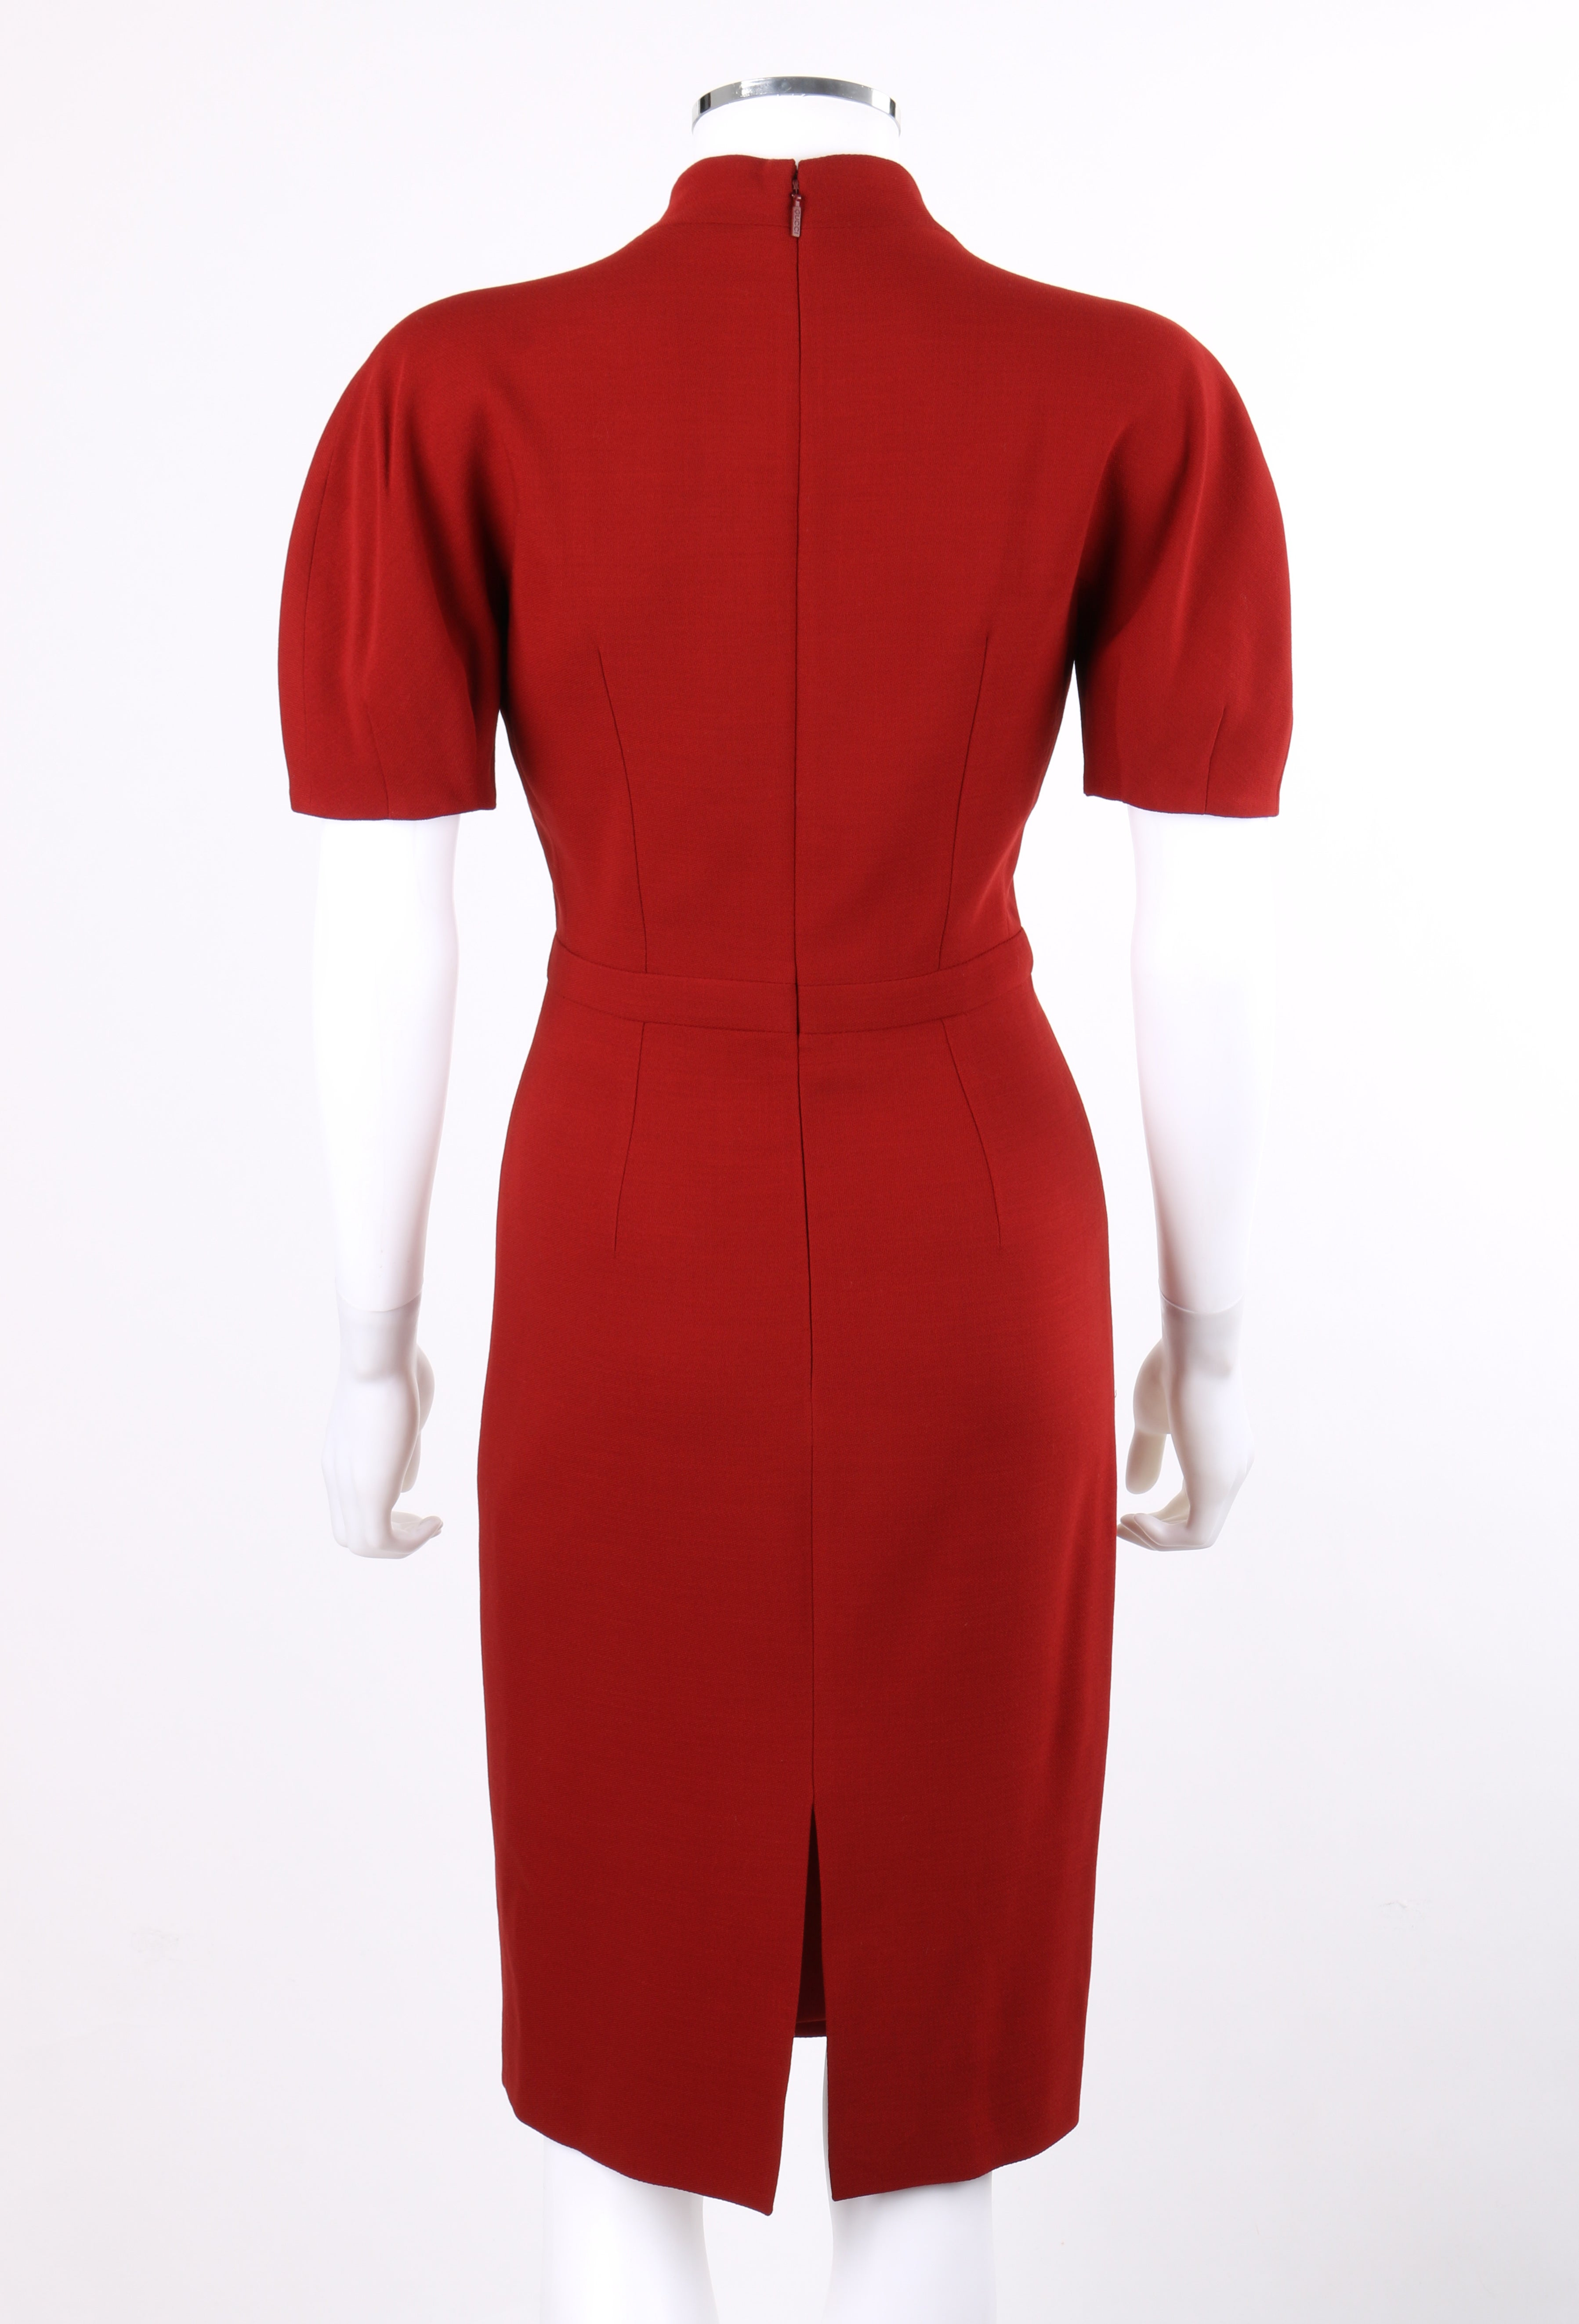 d746ca44f GUCCI Pre-Fall 2013 Red Wool Button Front Dolman Sleeve Shift Dress NWT at  1stdibs